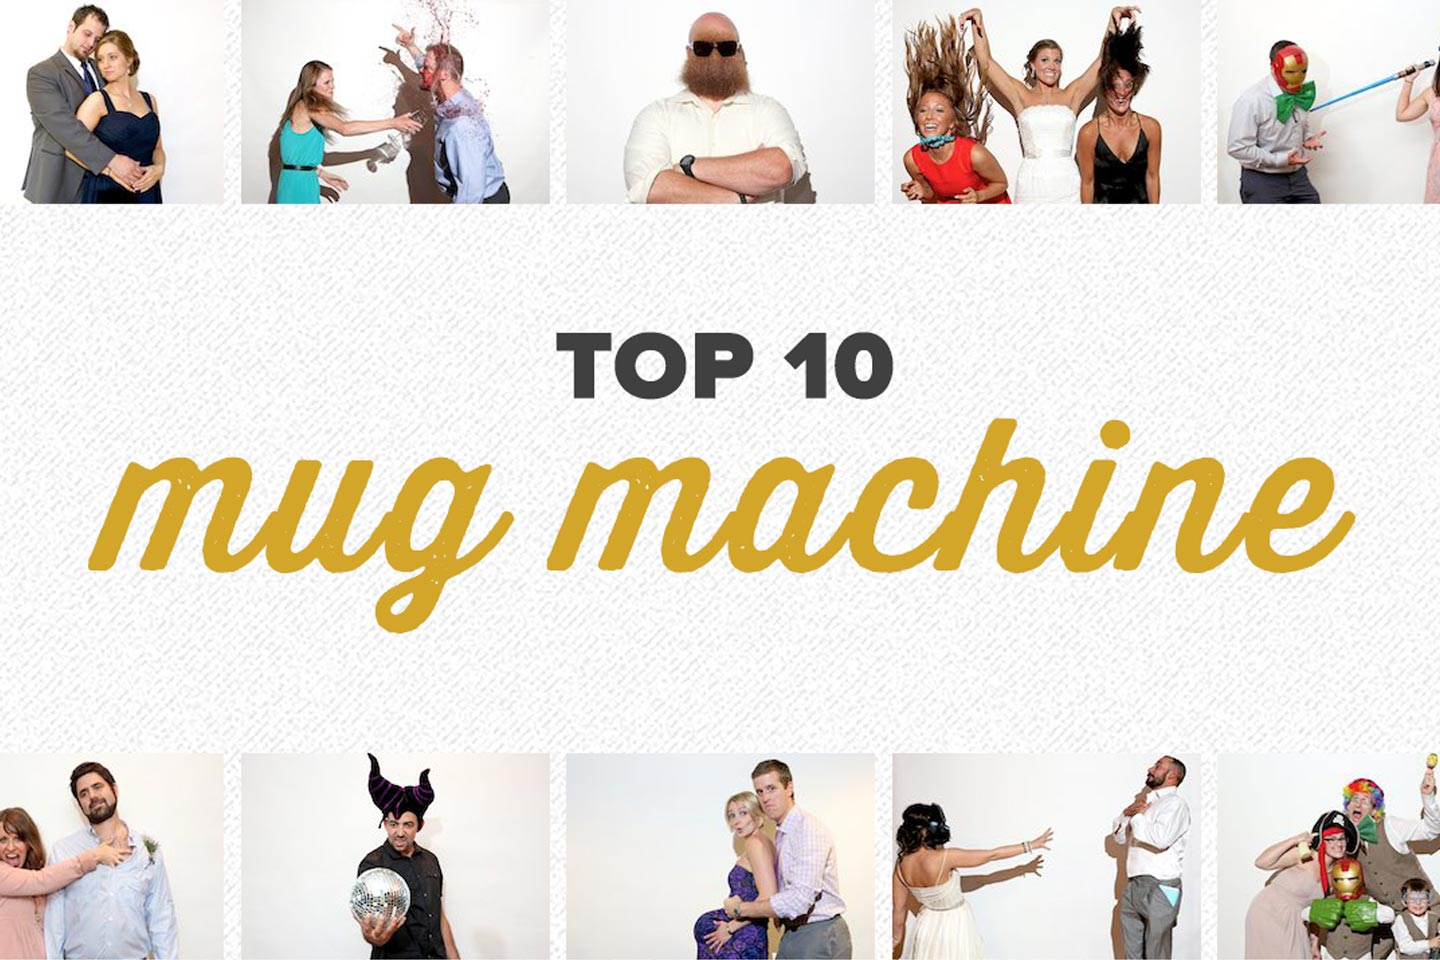 13214top 10 2014 | mug machine